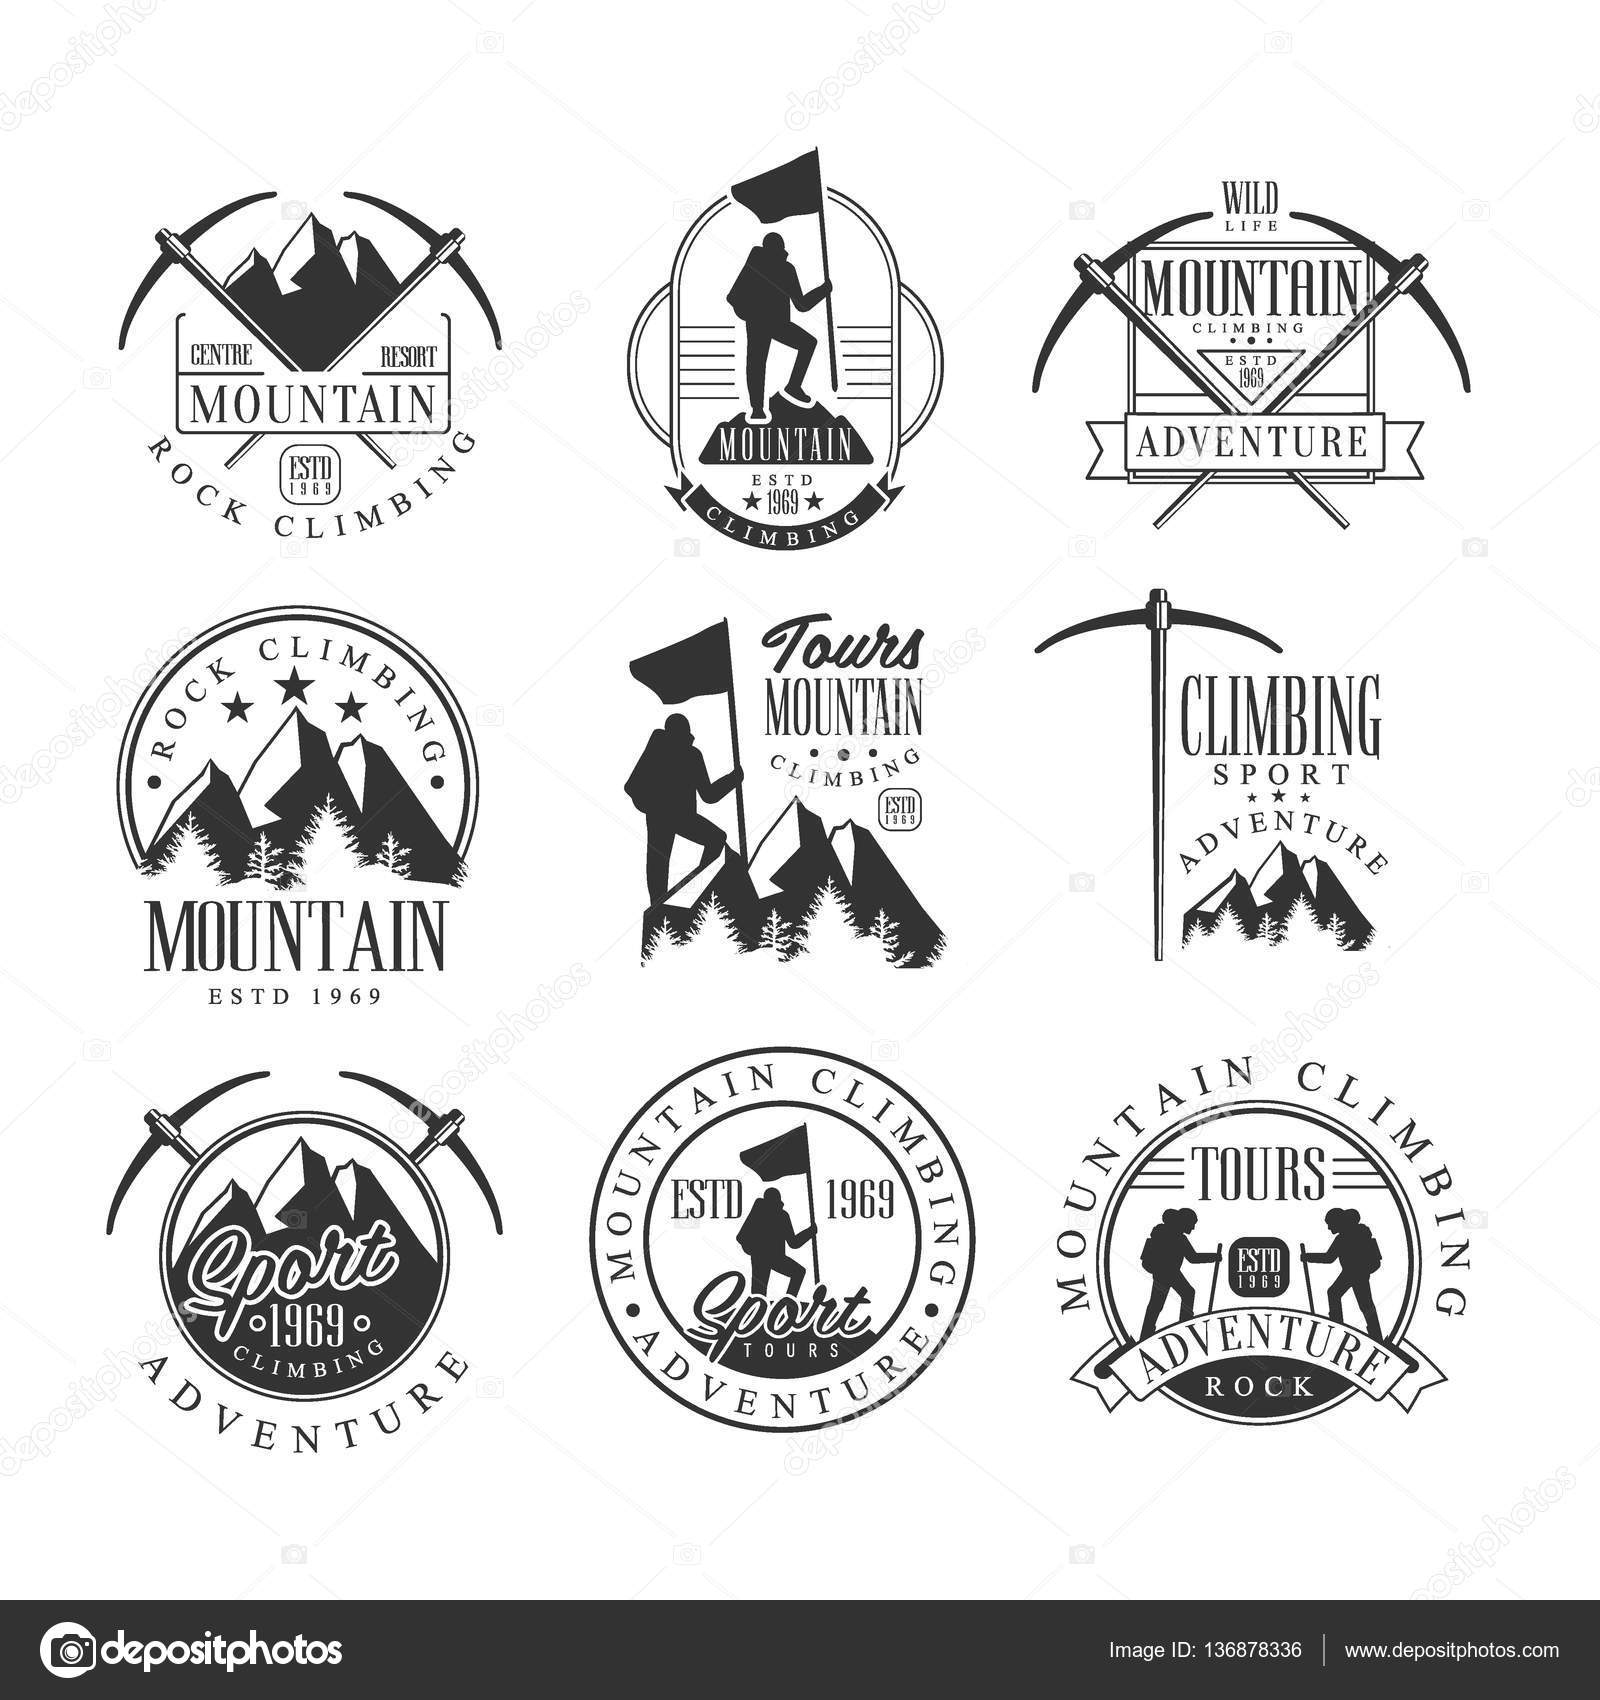 Adventure clipart black and white Sign White Black And Text